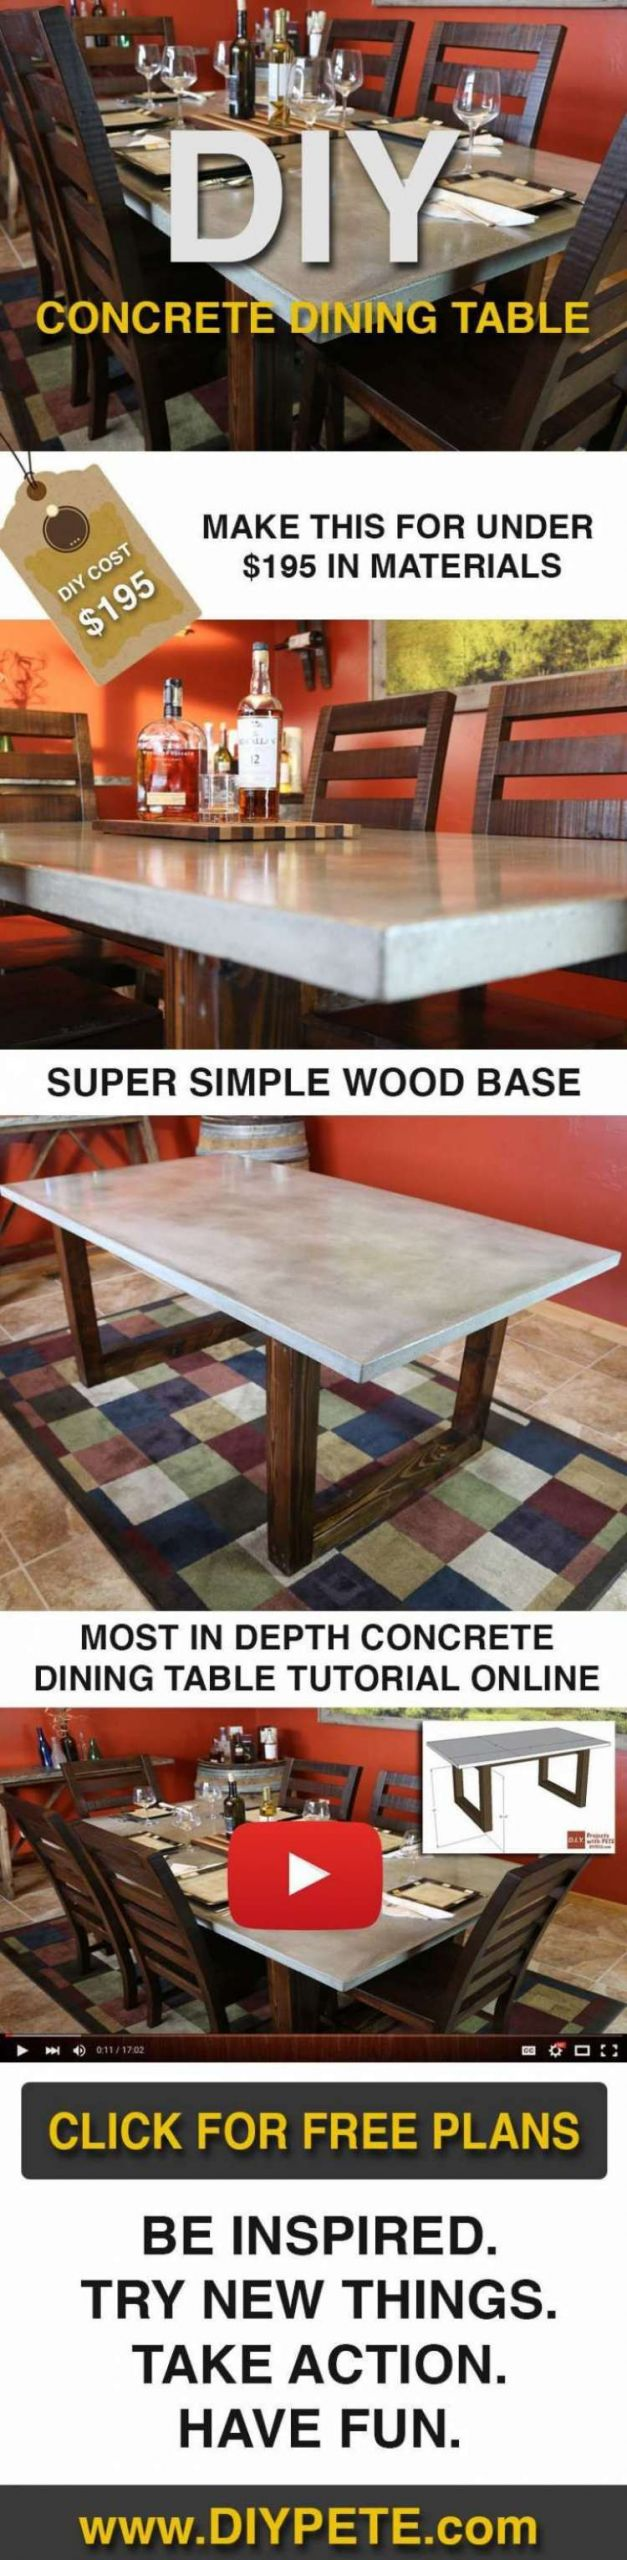 diy hardwood floor table of outdoor electrical outlet beautiful 33 new plug in outdoor light for diy sofa table with outlet awesome outdoor table and chairs dubai petite outdoor sofa 0d pati